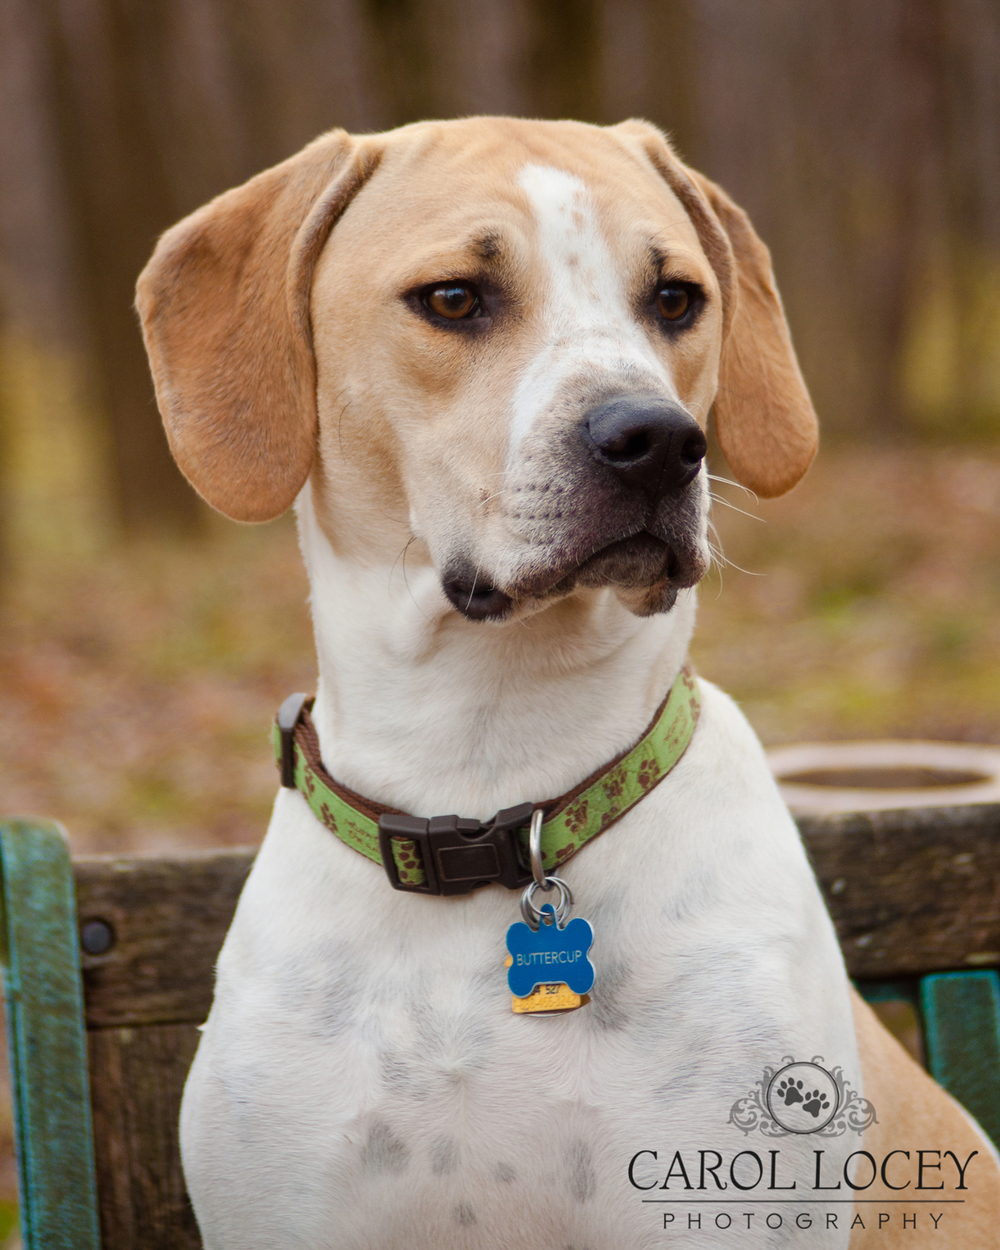 Carol_Locey_Photography_dog_portraits.jpg